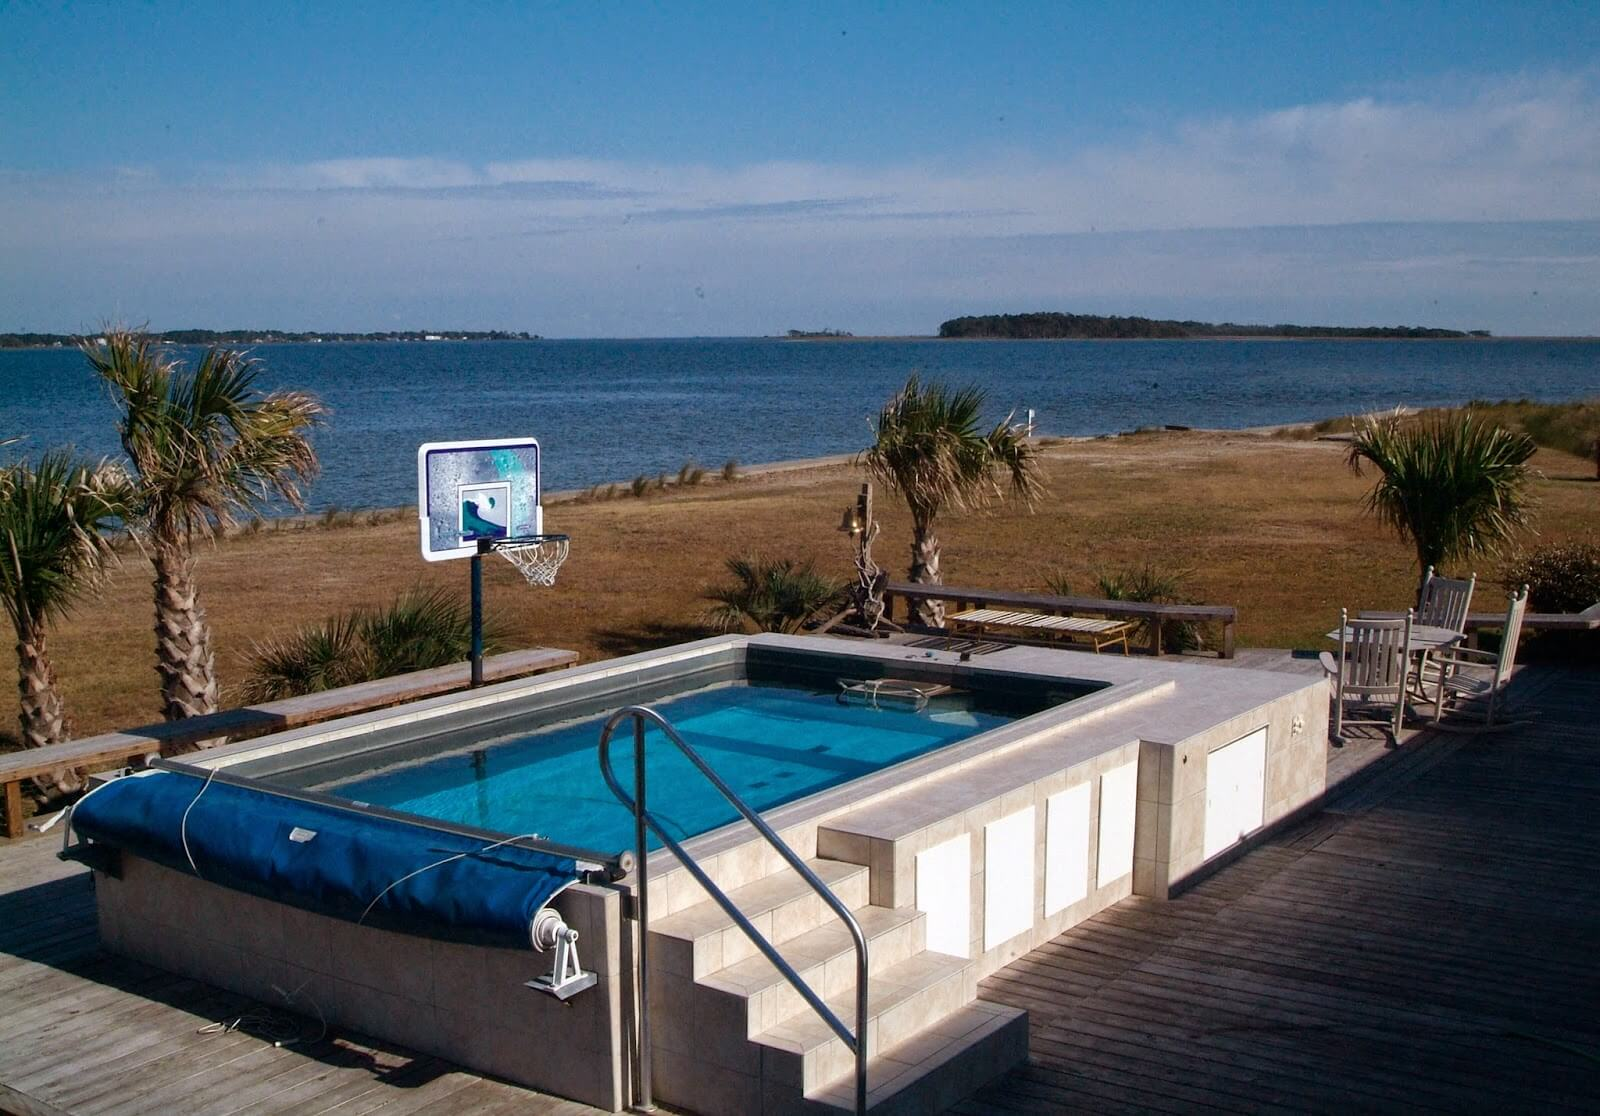 a partially in-ground Endless Pool on the North Carolina shore